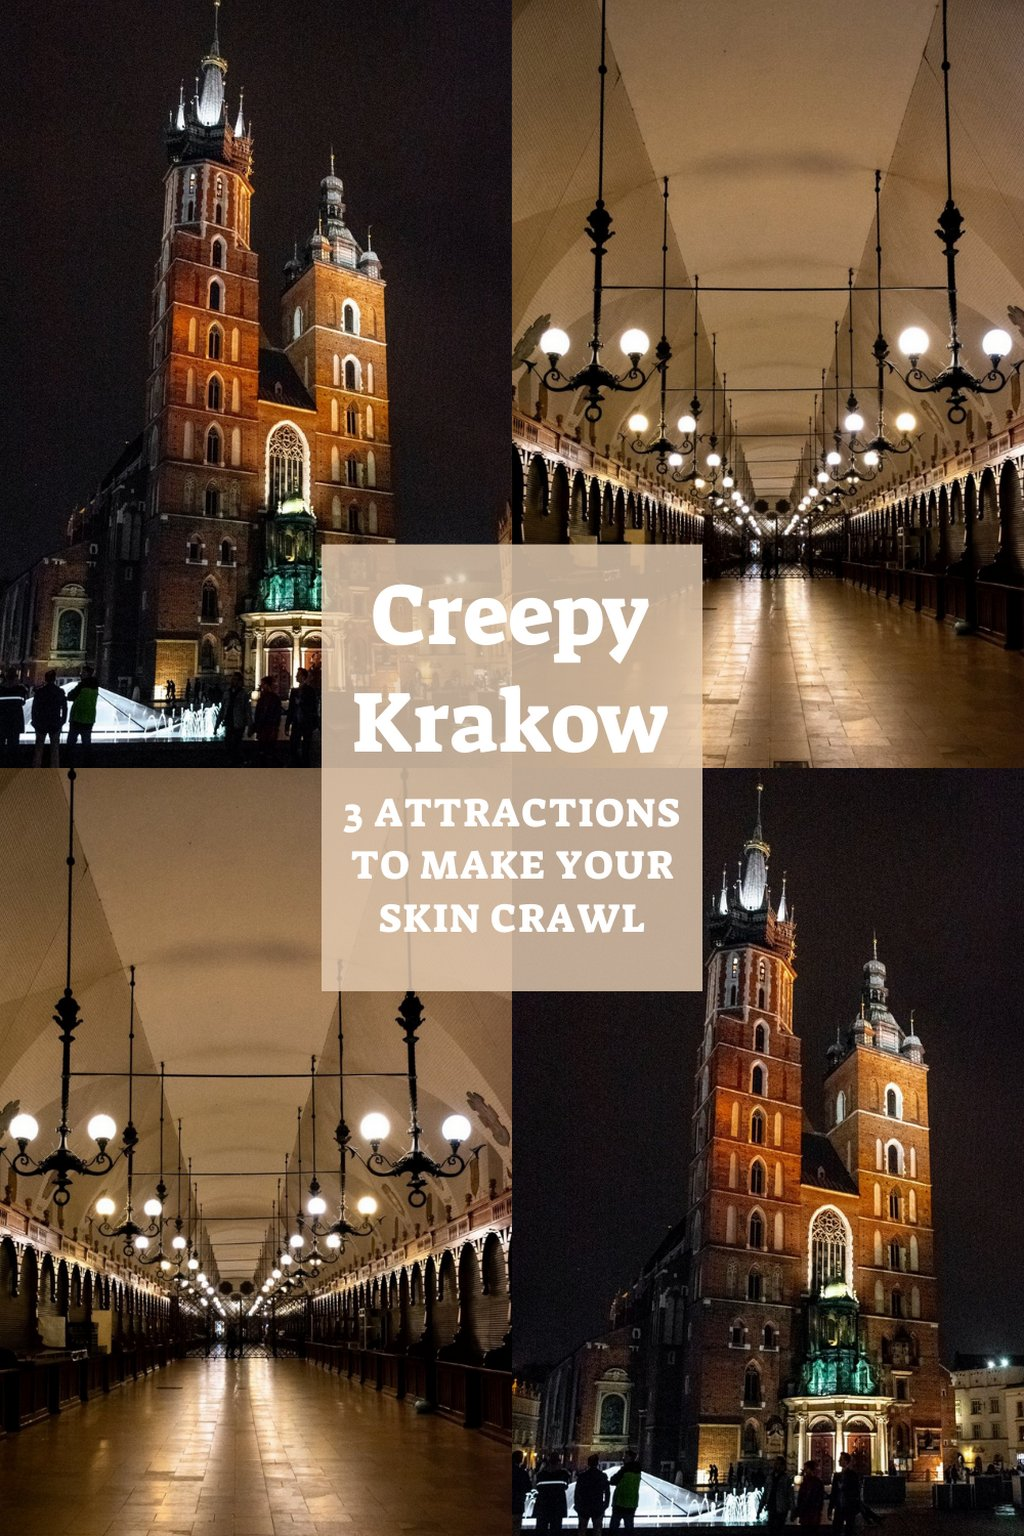 Creepy Krakow- 3 attractions to make your skin crawl